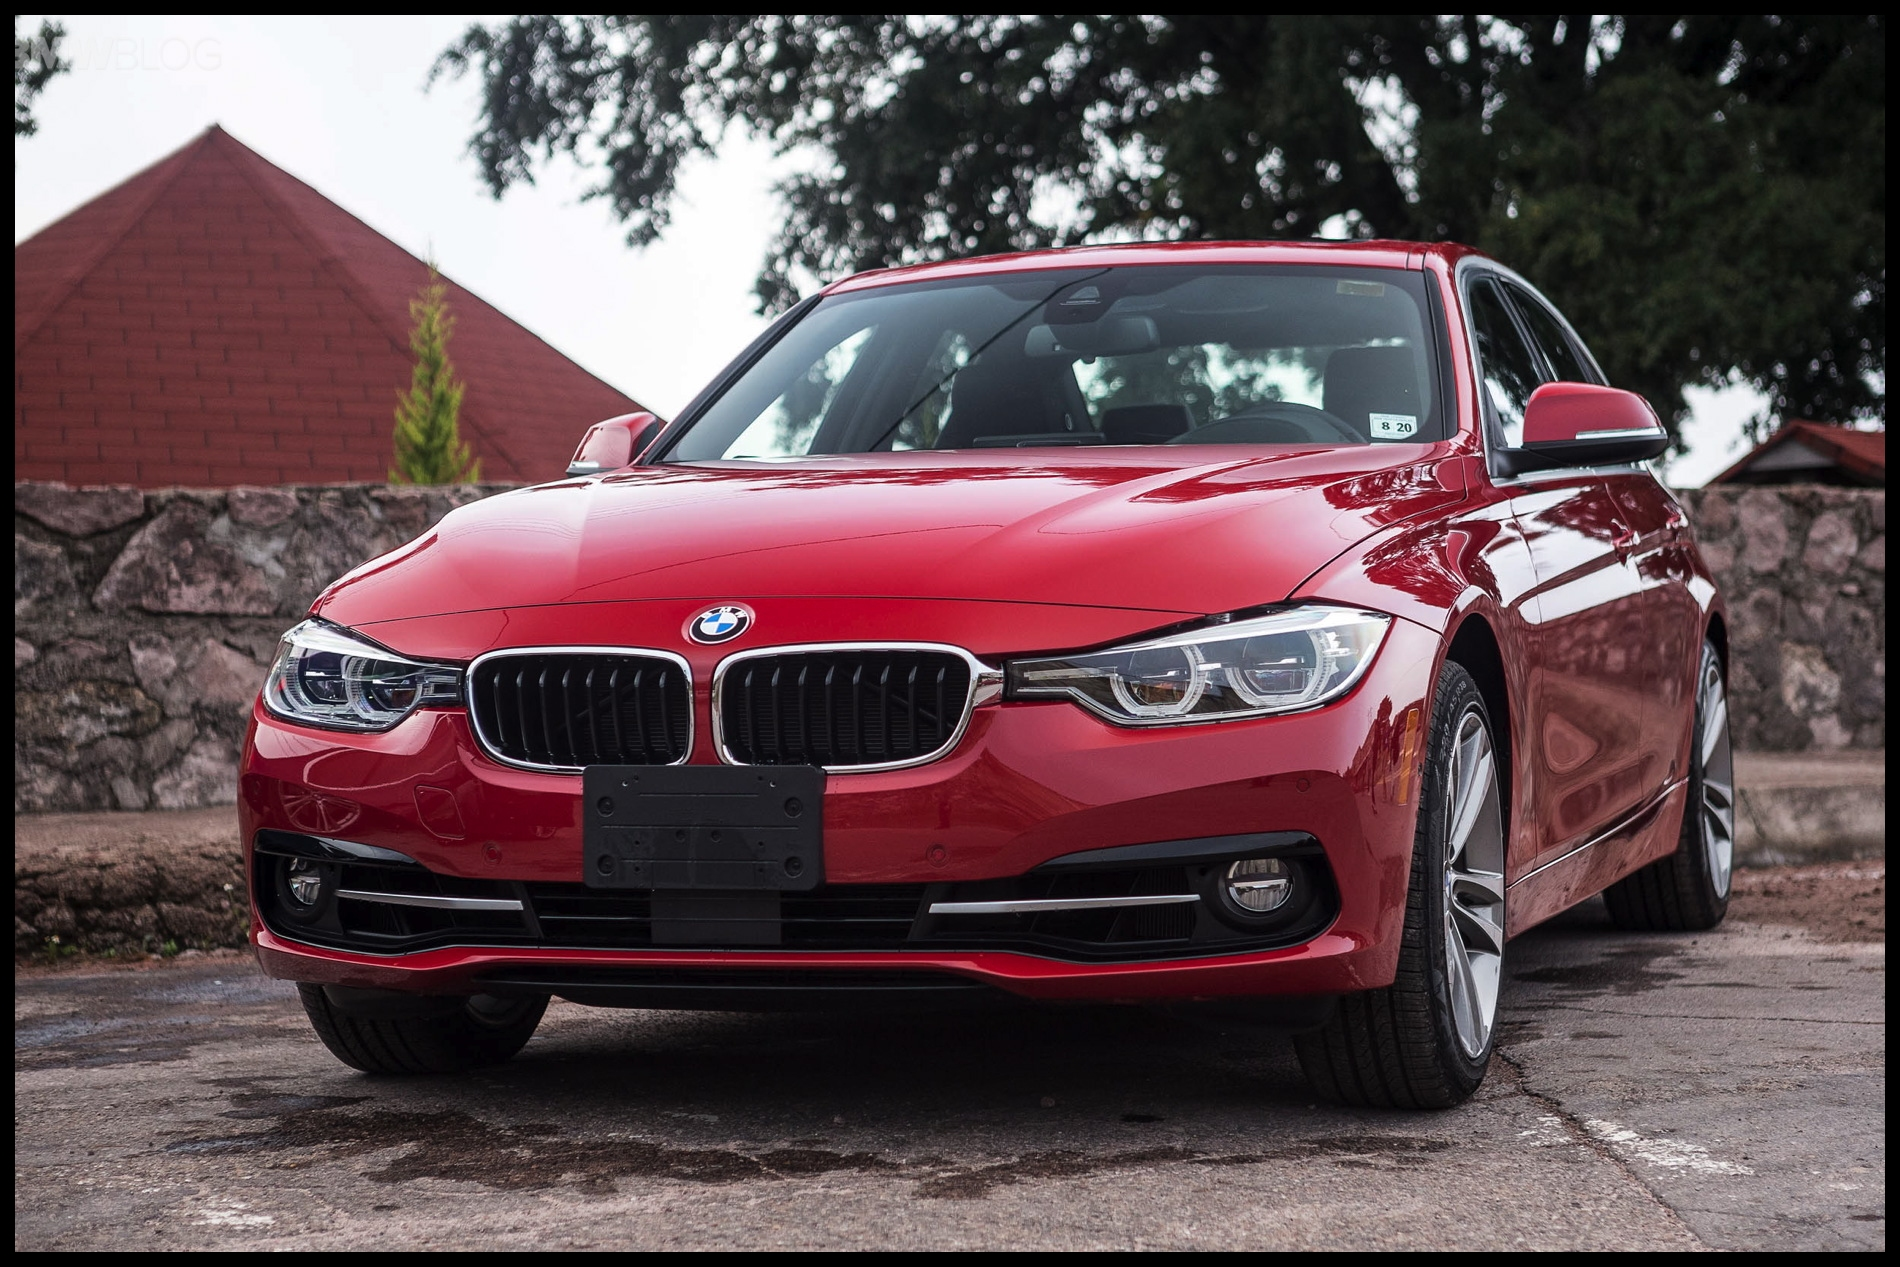 2016 bmw 340i test drive images 26